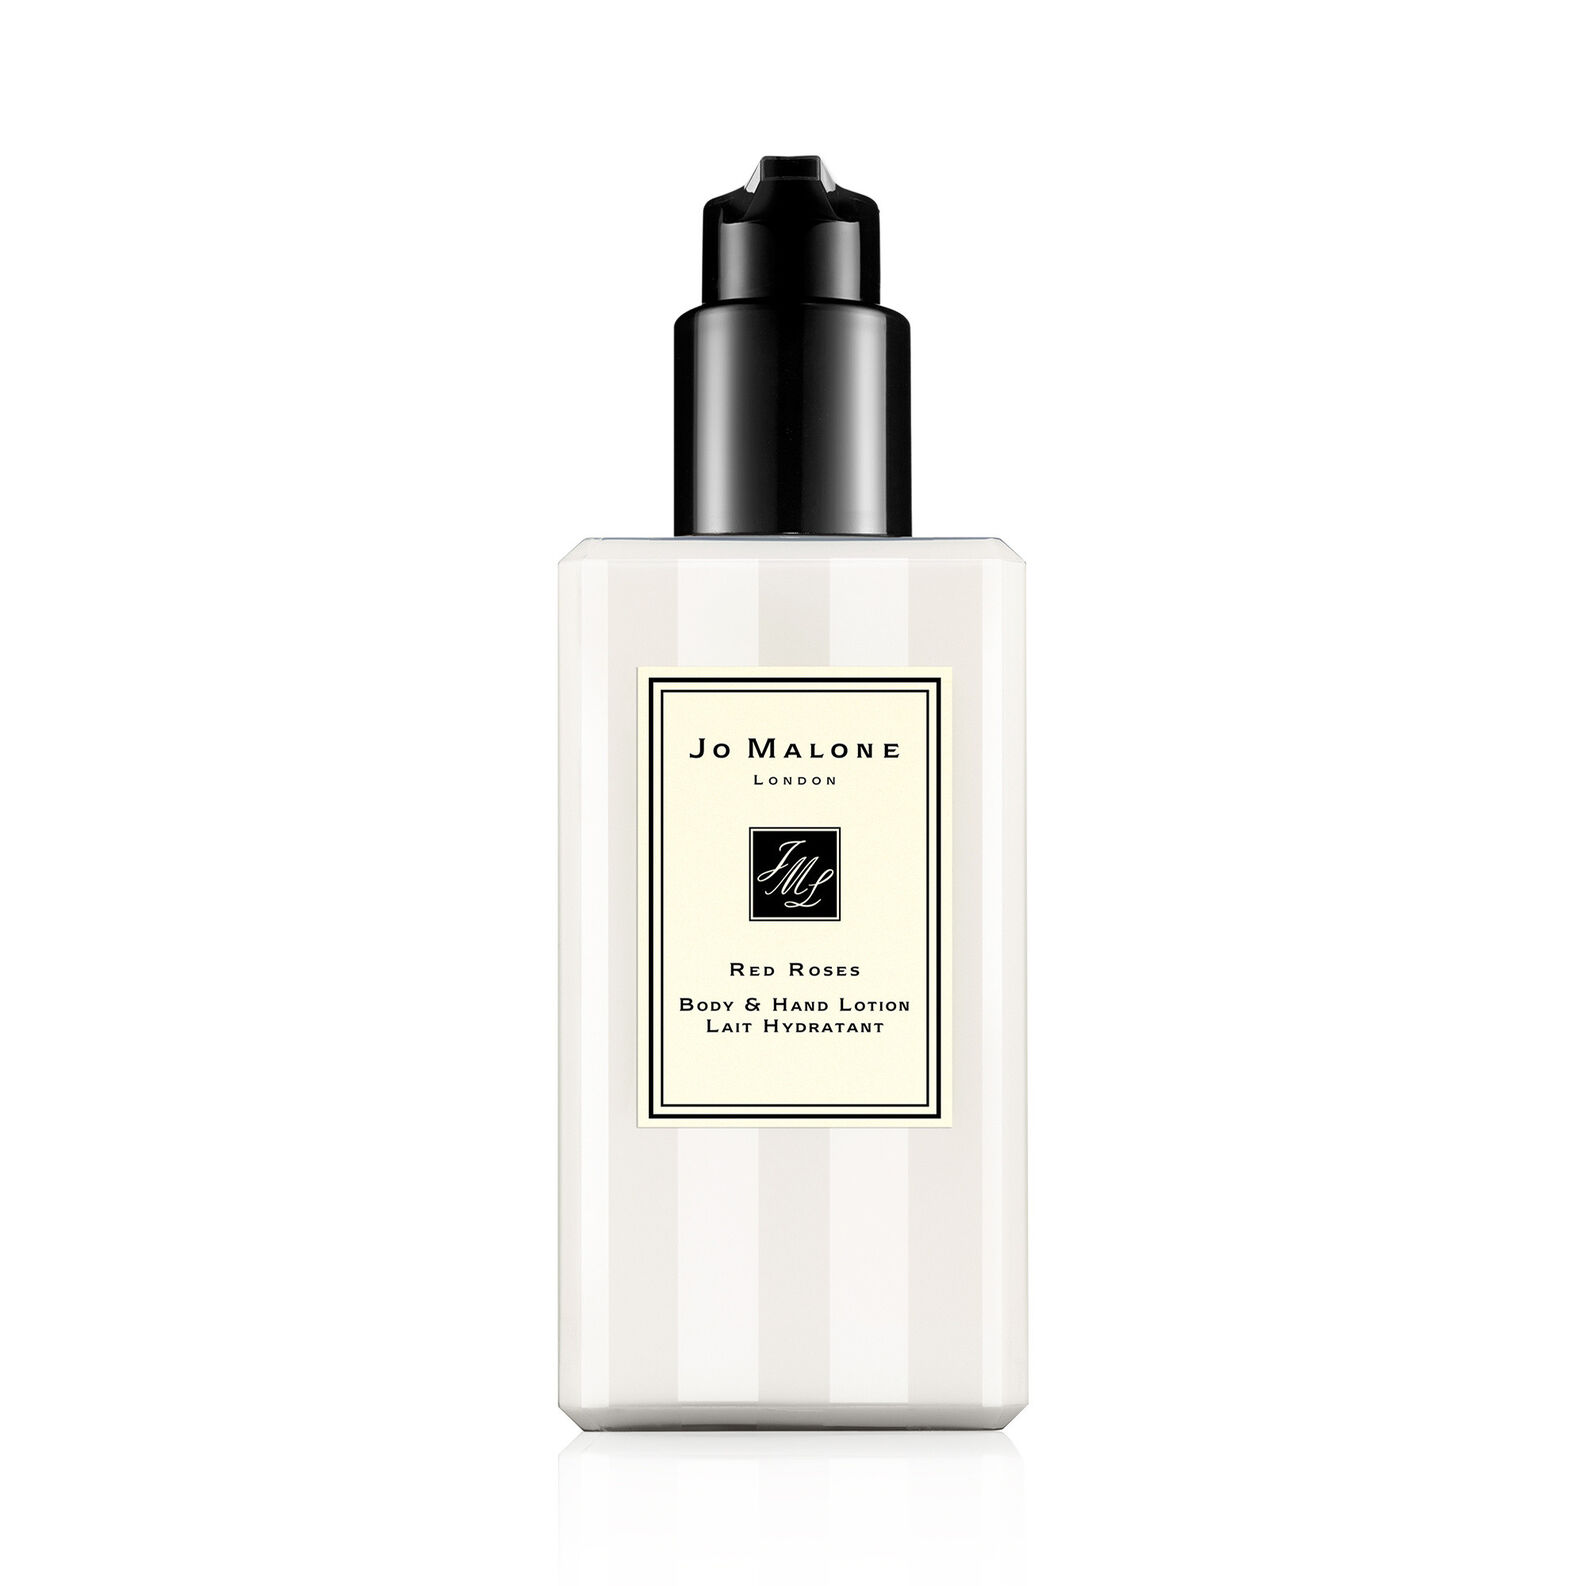 JO MALONE LONDON RED ROSES BODY & HAND LOTION 250 ML